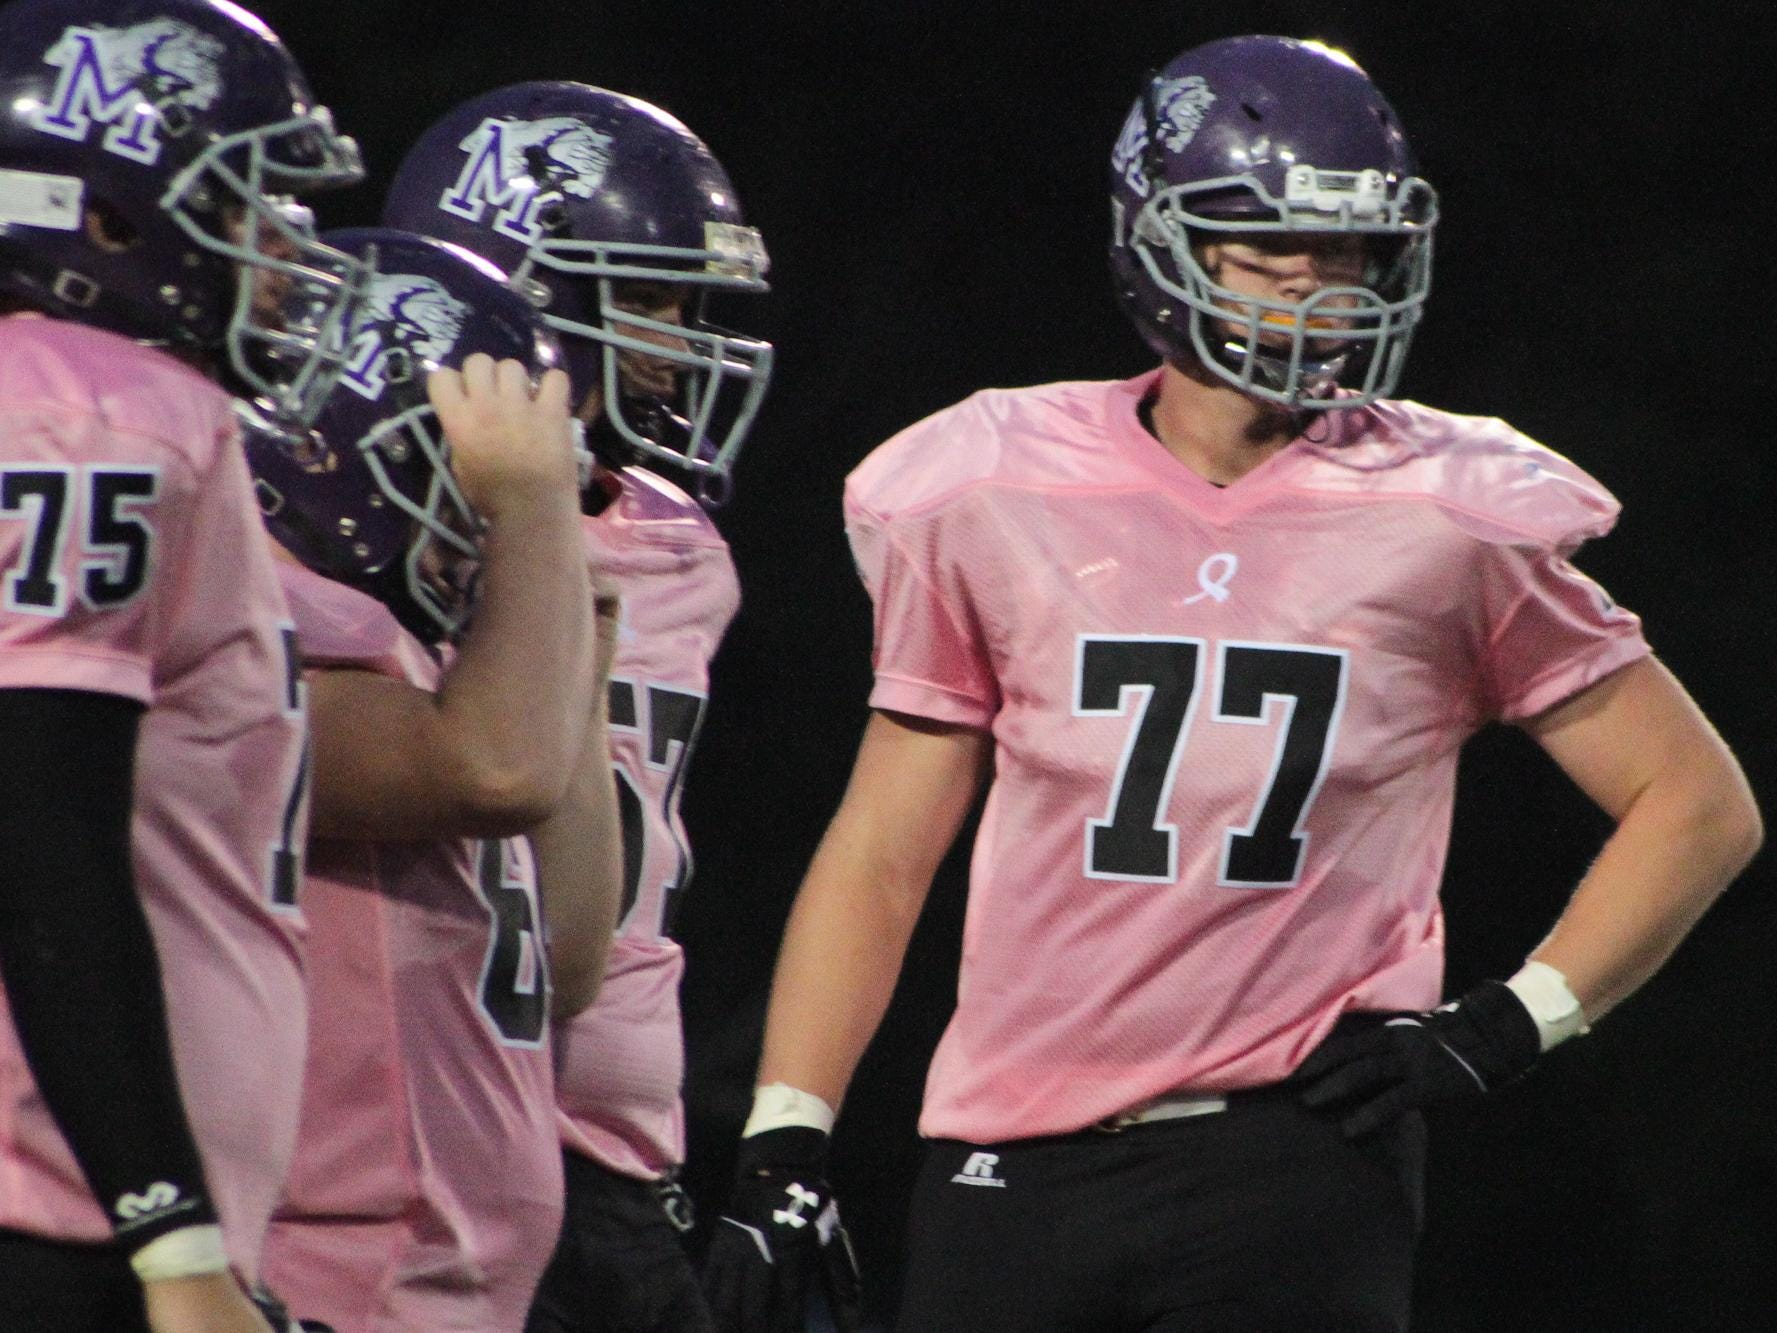 Milan's Jacob Rimmer has two NCAA Division II offers for college — Vanderbilt and Miami.